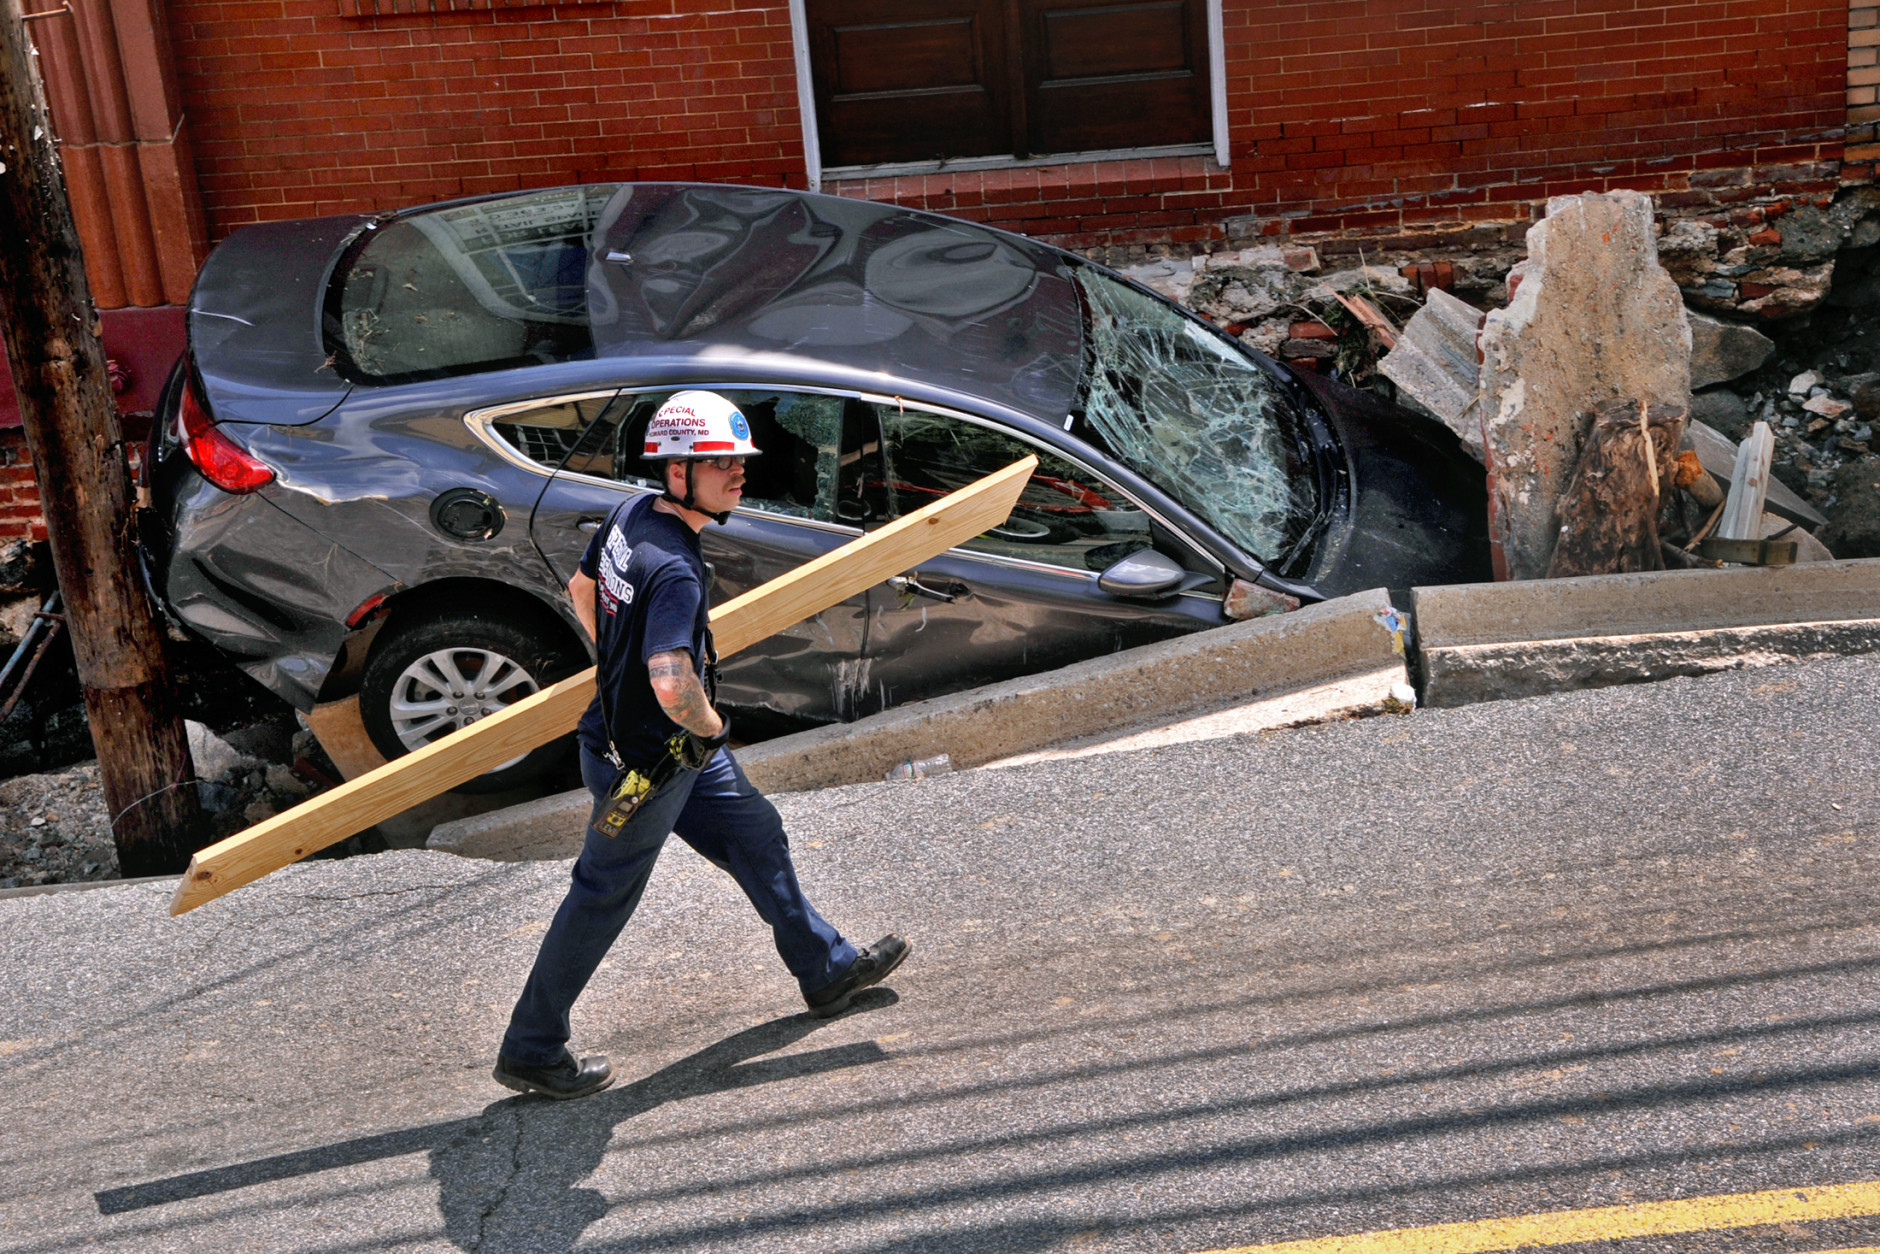 A worker carries lumber to shore up one of the stores on Main Street after the sidewalk caved in due to overnight flooding in Ellicott City, Md., Sunday, July 31, 2016. Historic, low-lying Ellicott City, Maryland, was ravaged by floodwaters Saturday night, killing a few people and causing devastating damage to homes and businesses, officials said. (Amy Davis/The Baltimore Sun via AP)